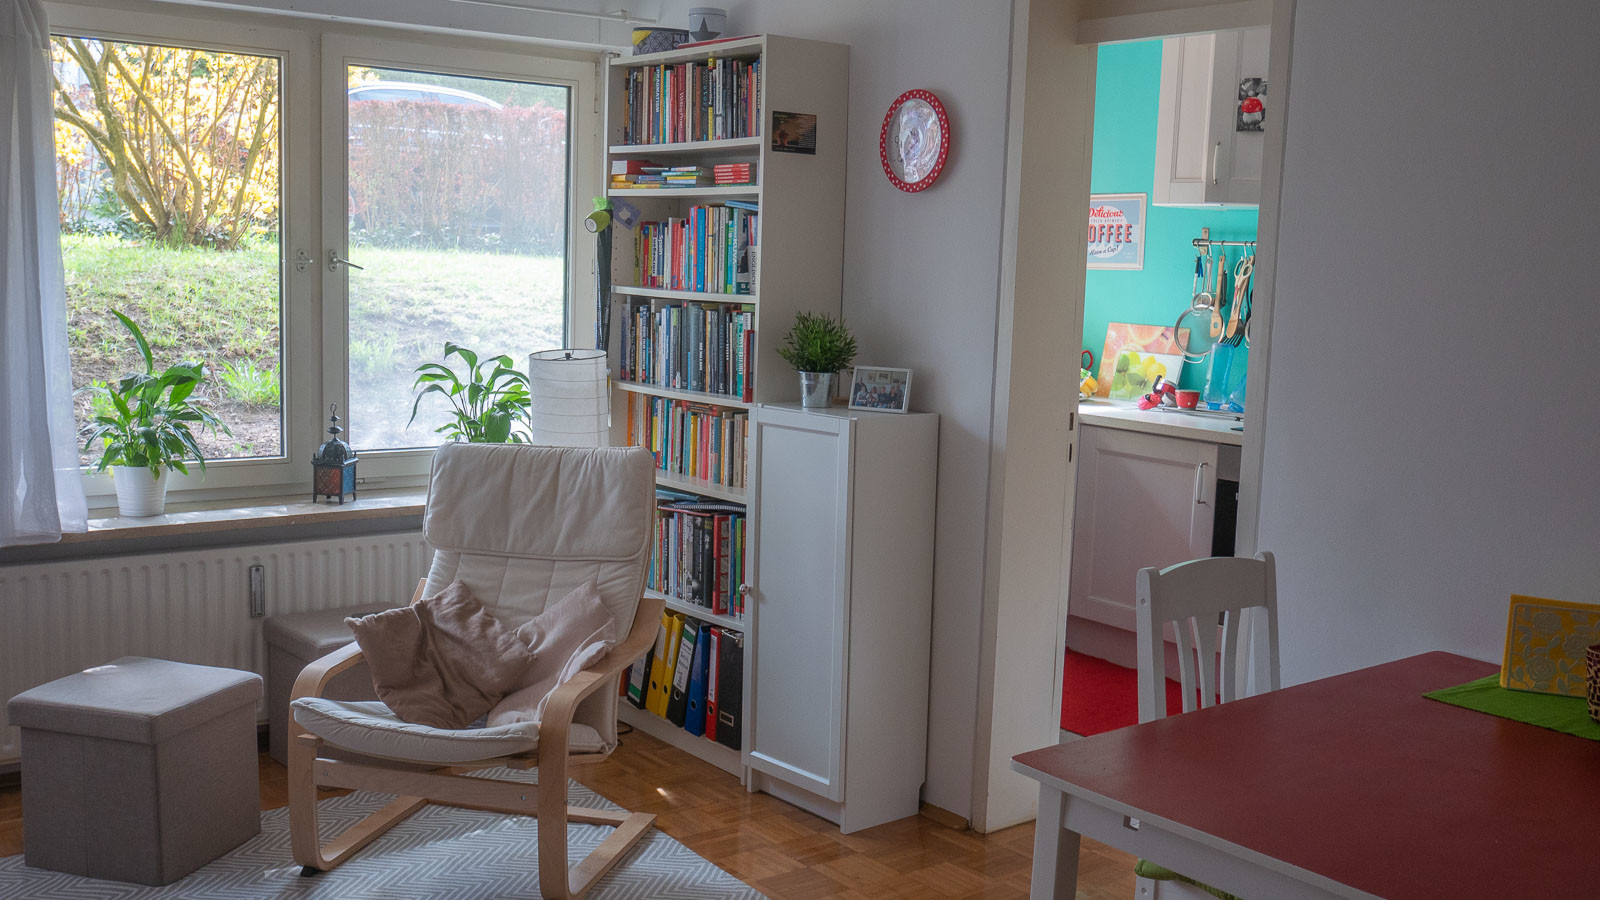 Beautiful Fully Furnished 2 Room Apartment For Rent For One Year Flat Rent Munich